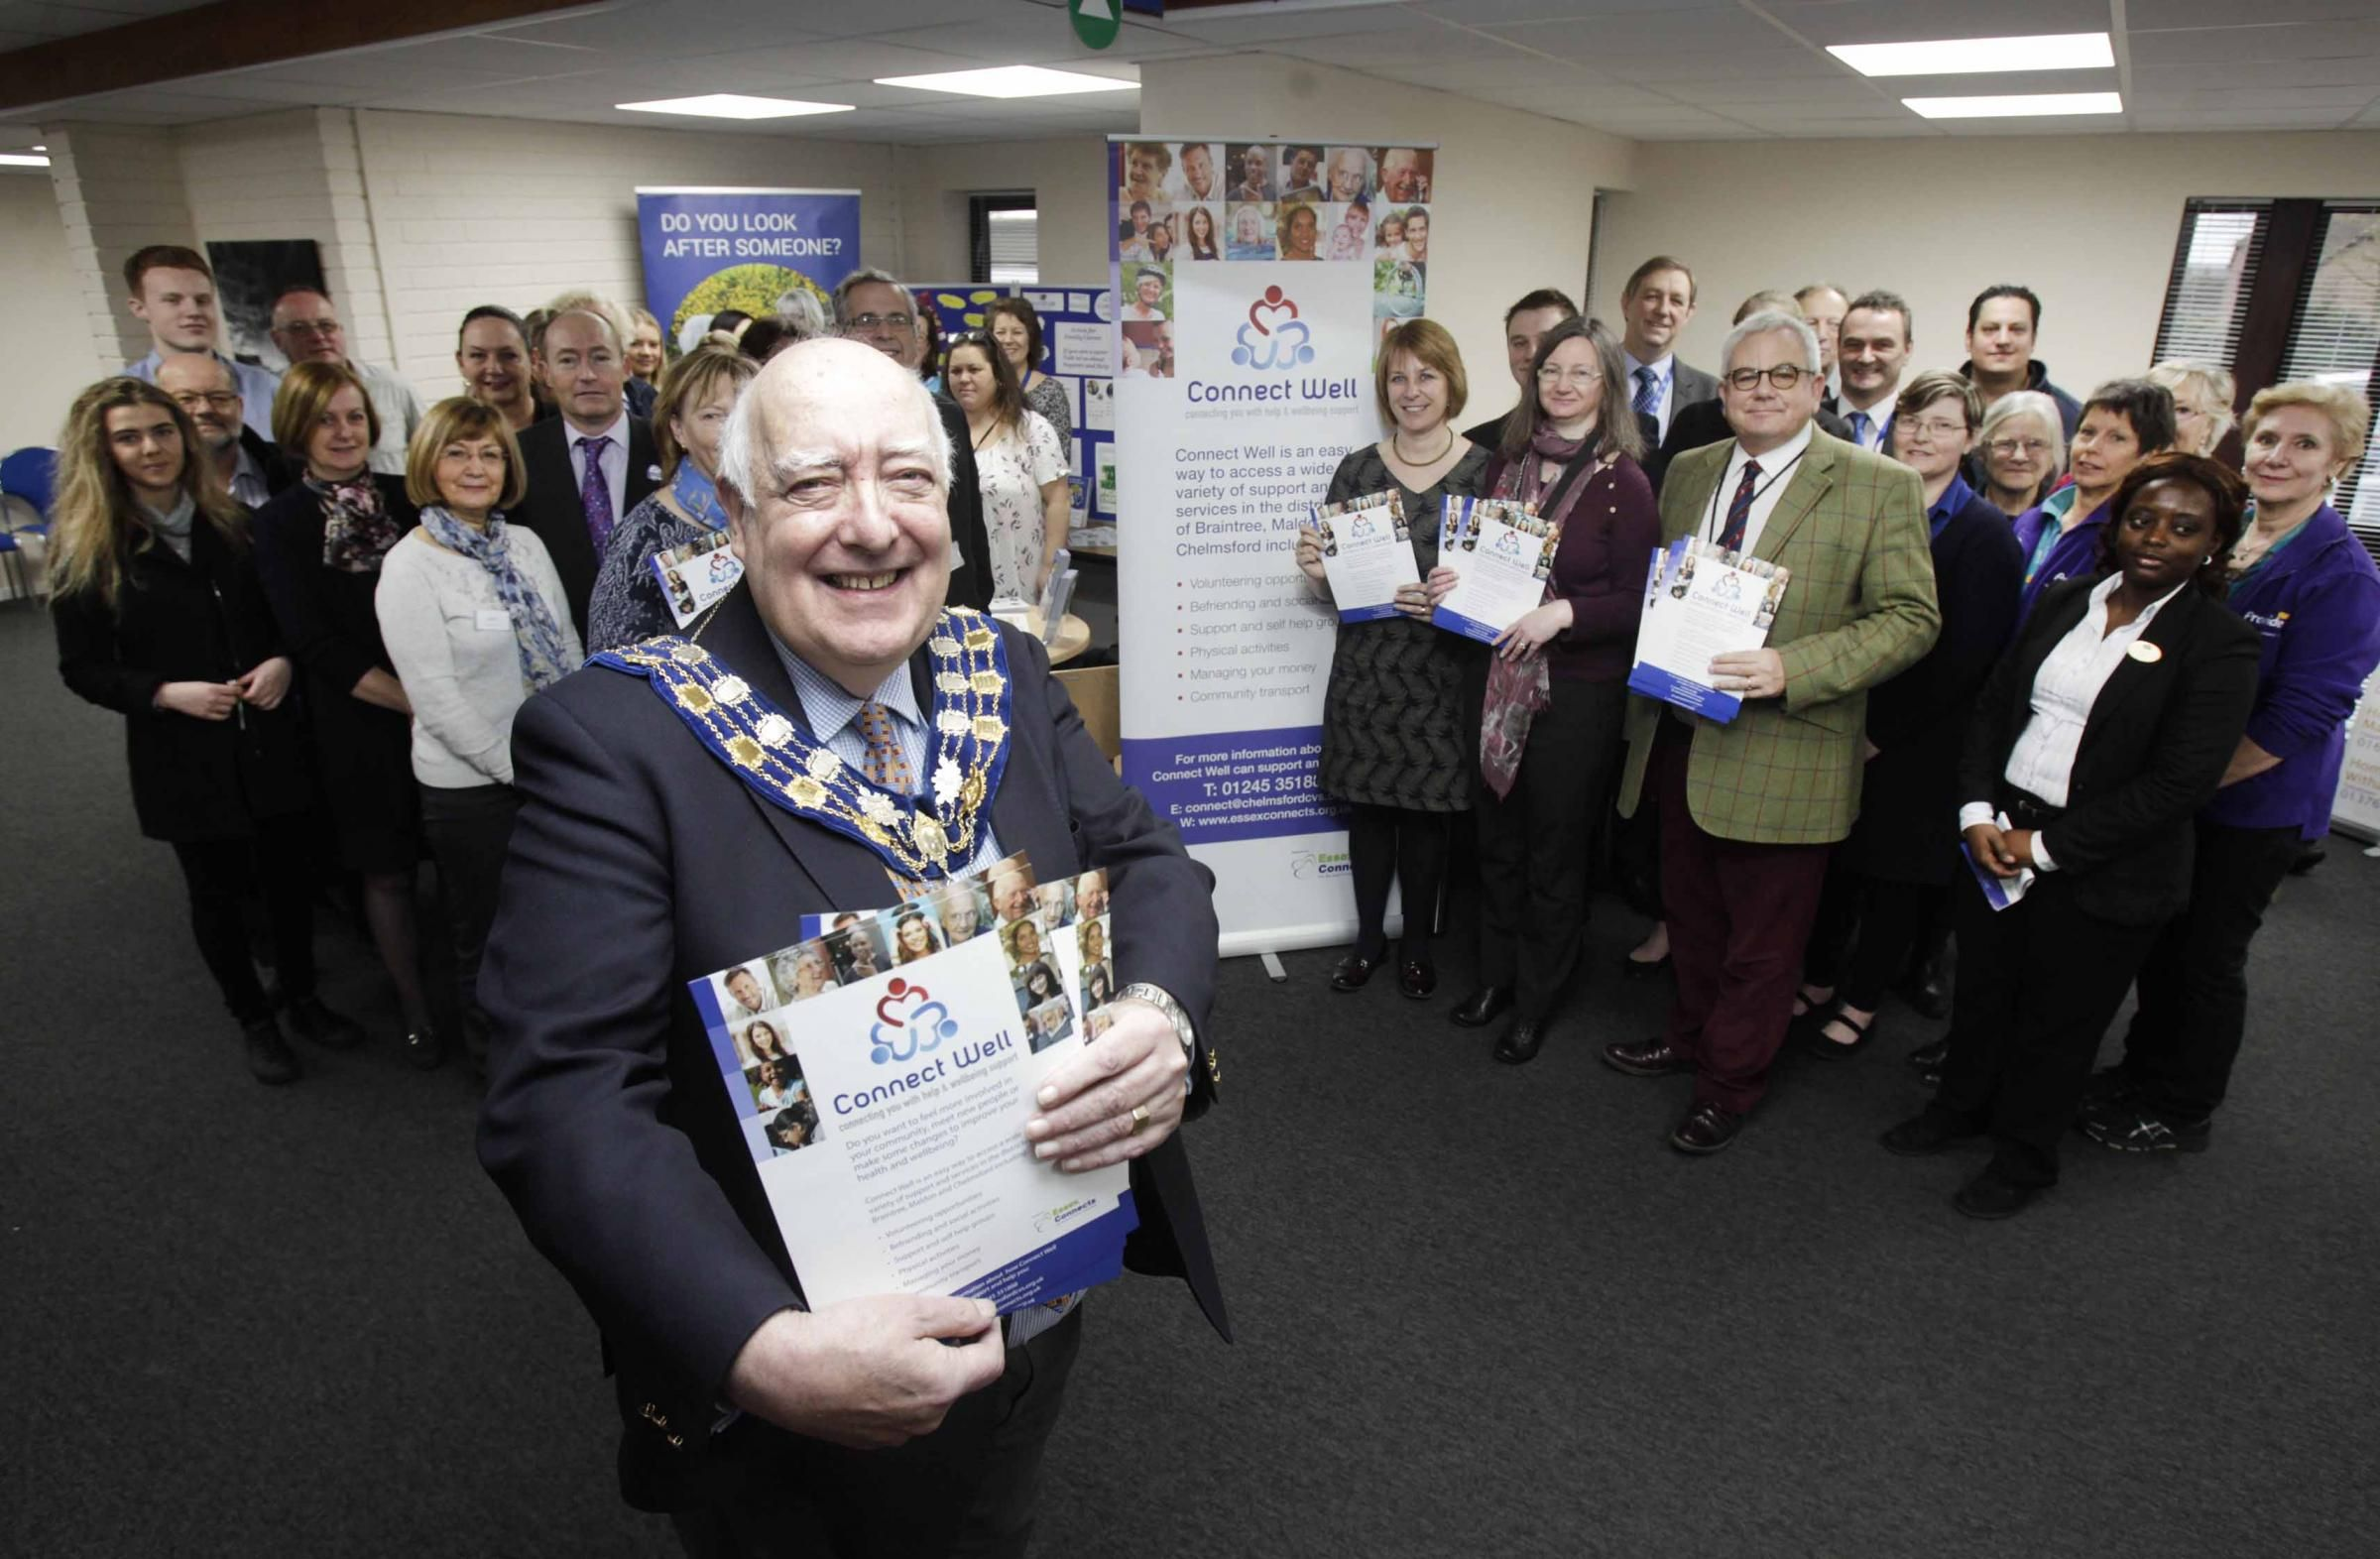 A NEW project has been launched to help people improve their health and wellbeing and get more involved in their community.